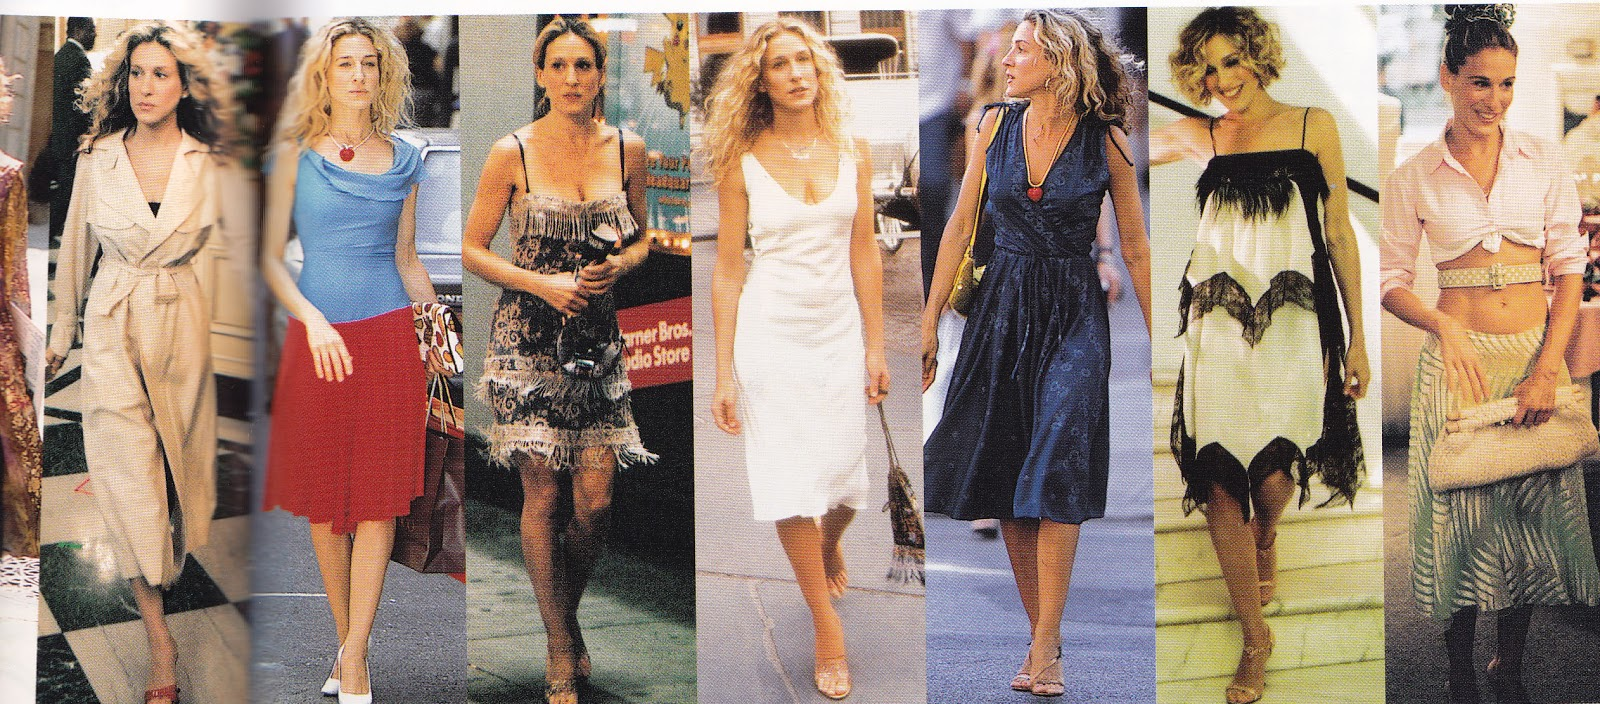 Buy carrie bradshaw dresses